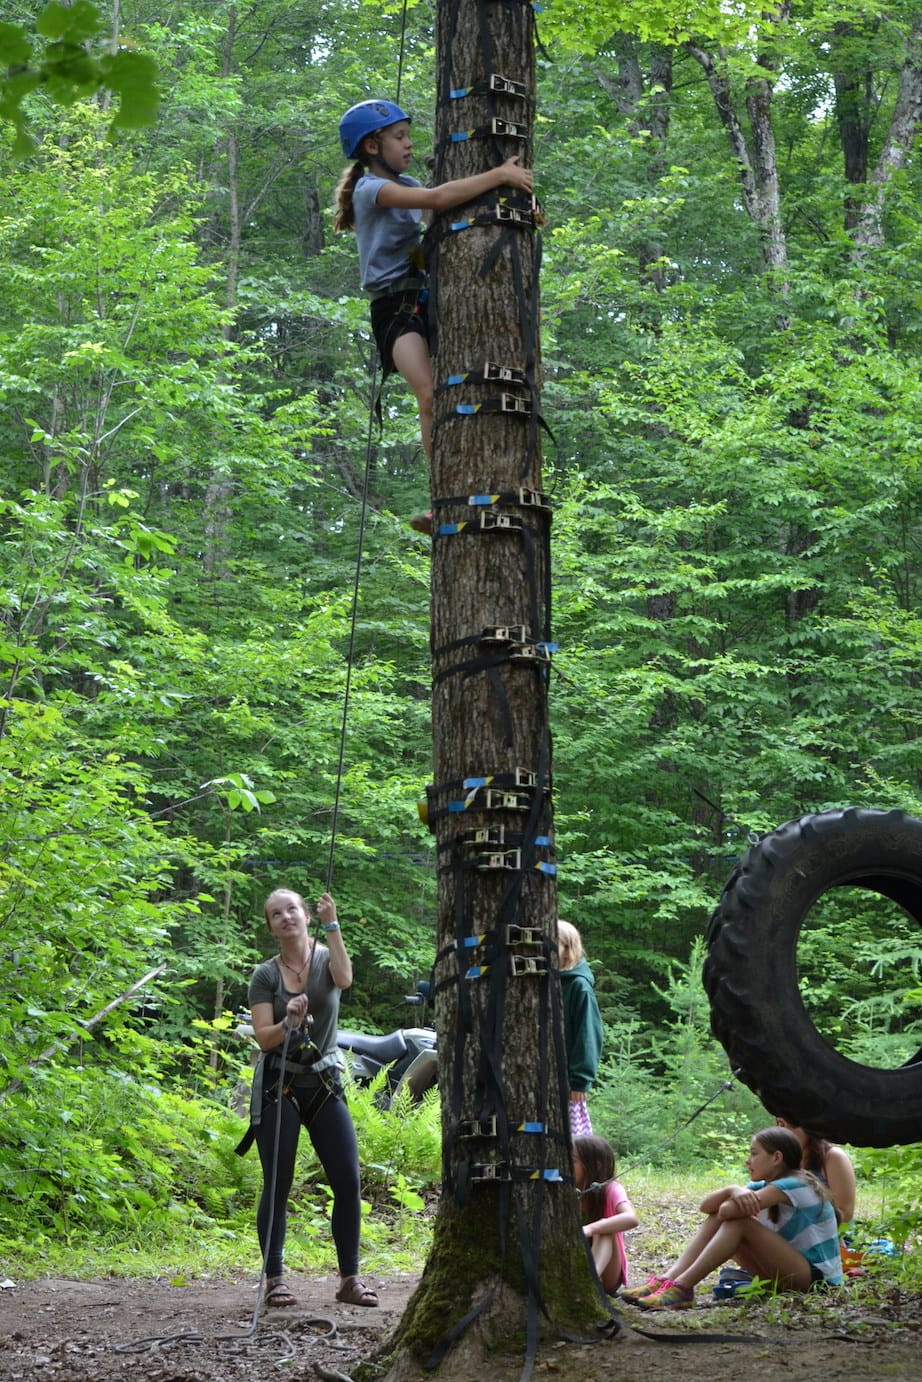 Introducing the Tree Climbing initiative at camp